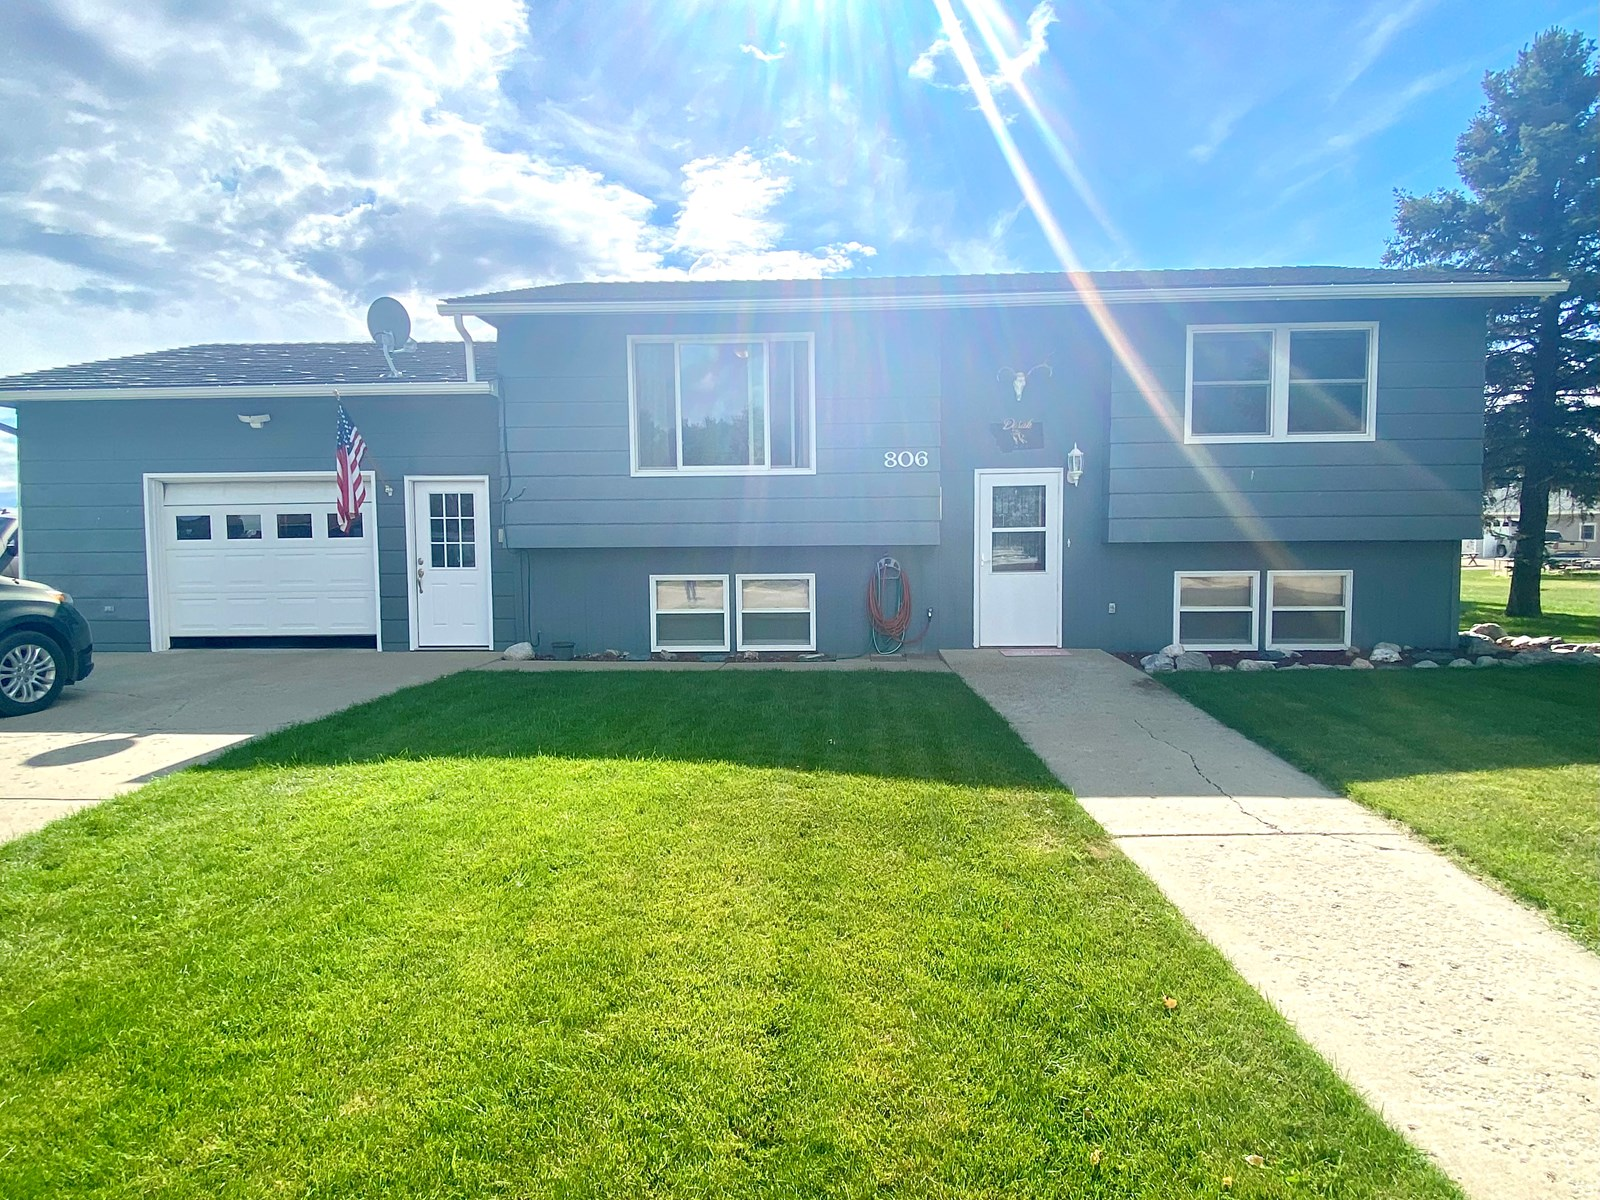 4 Bedroom, 2 Bath House with  Large Fenced Yard and Garden